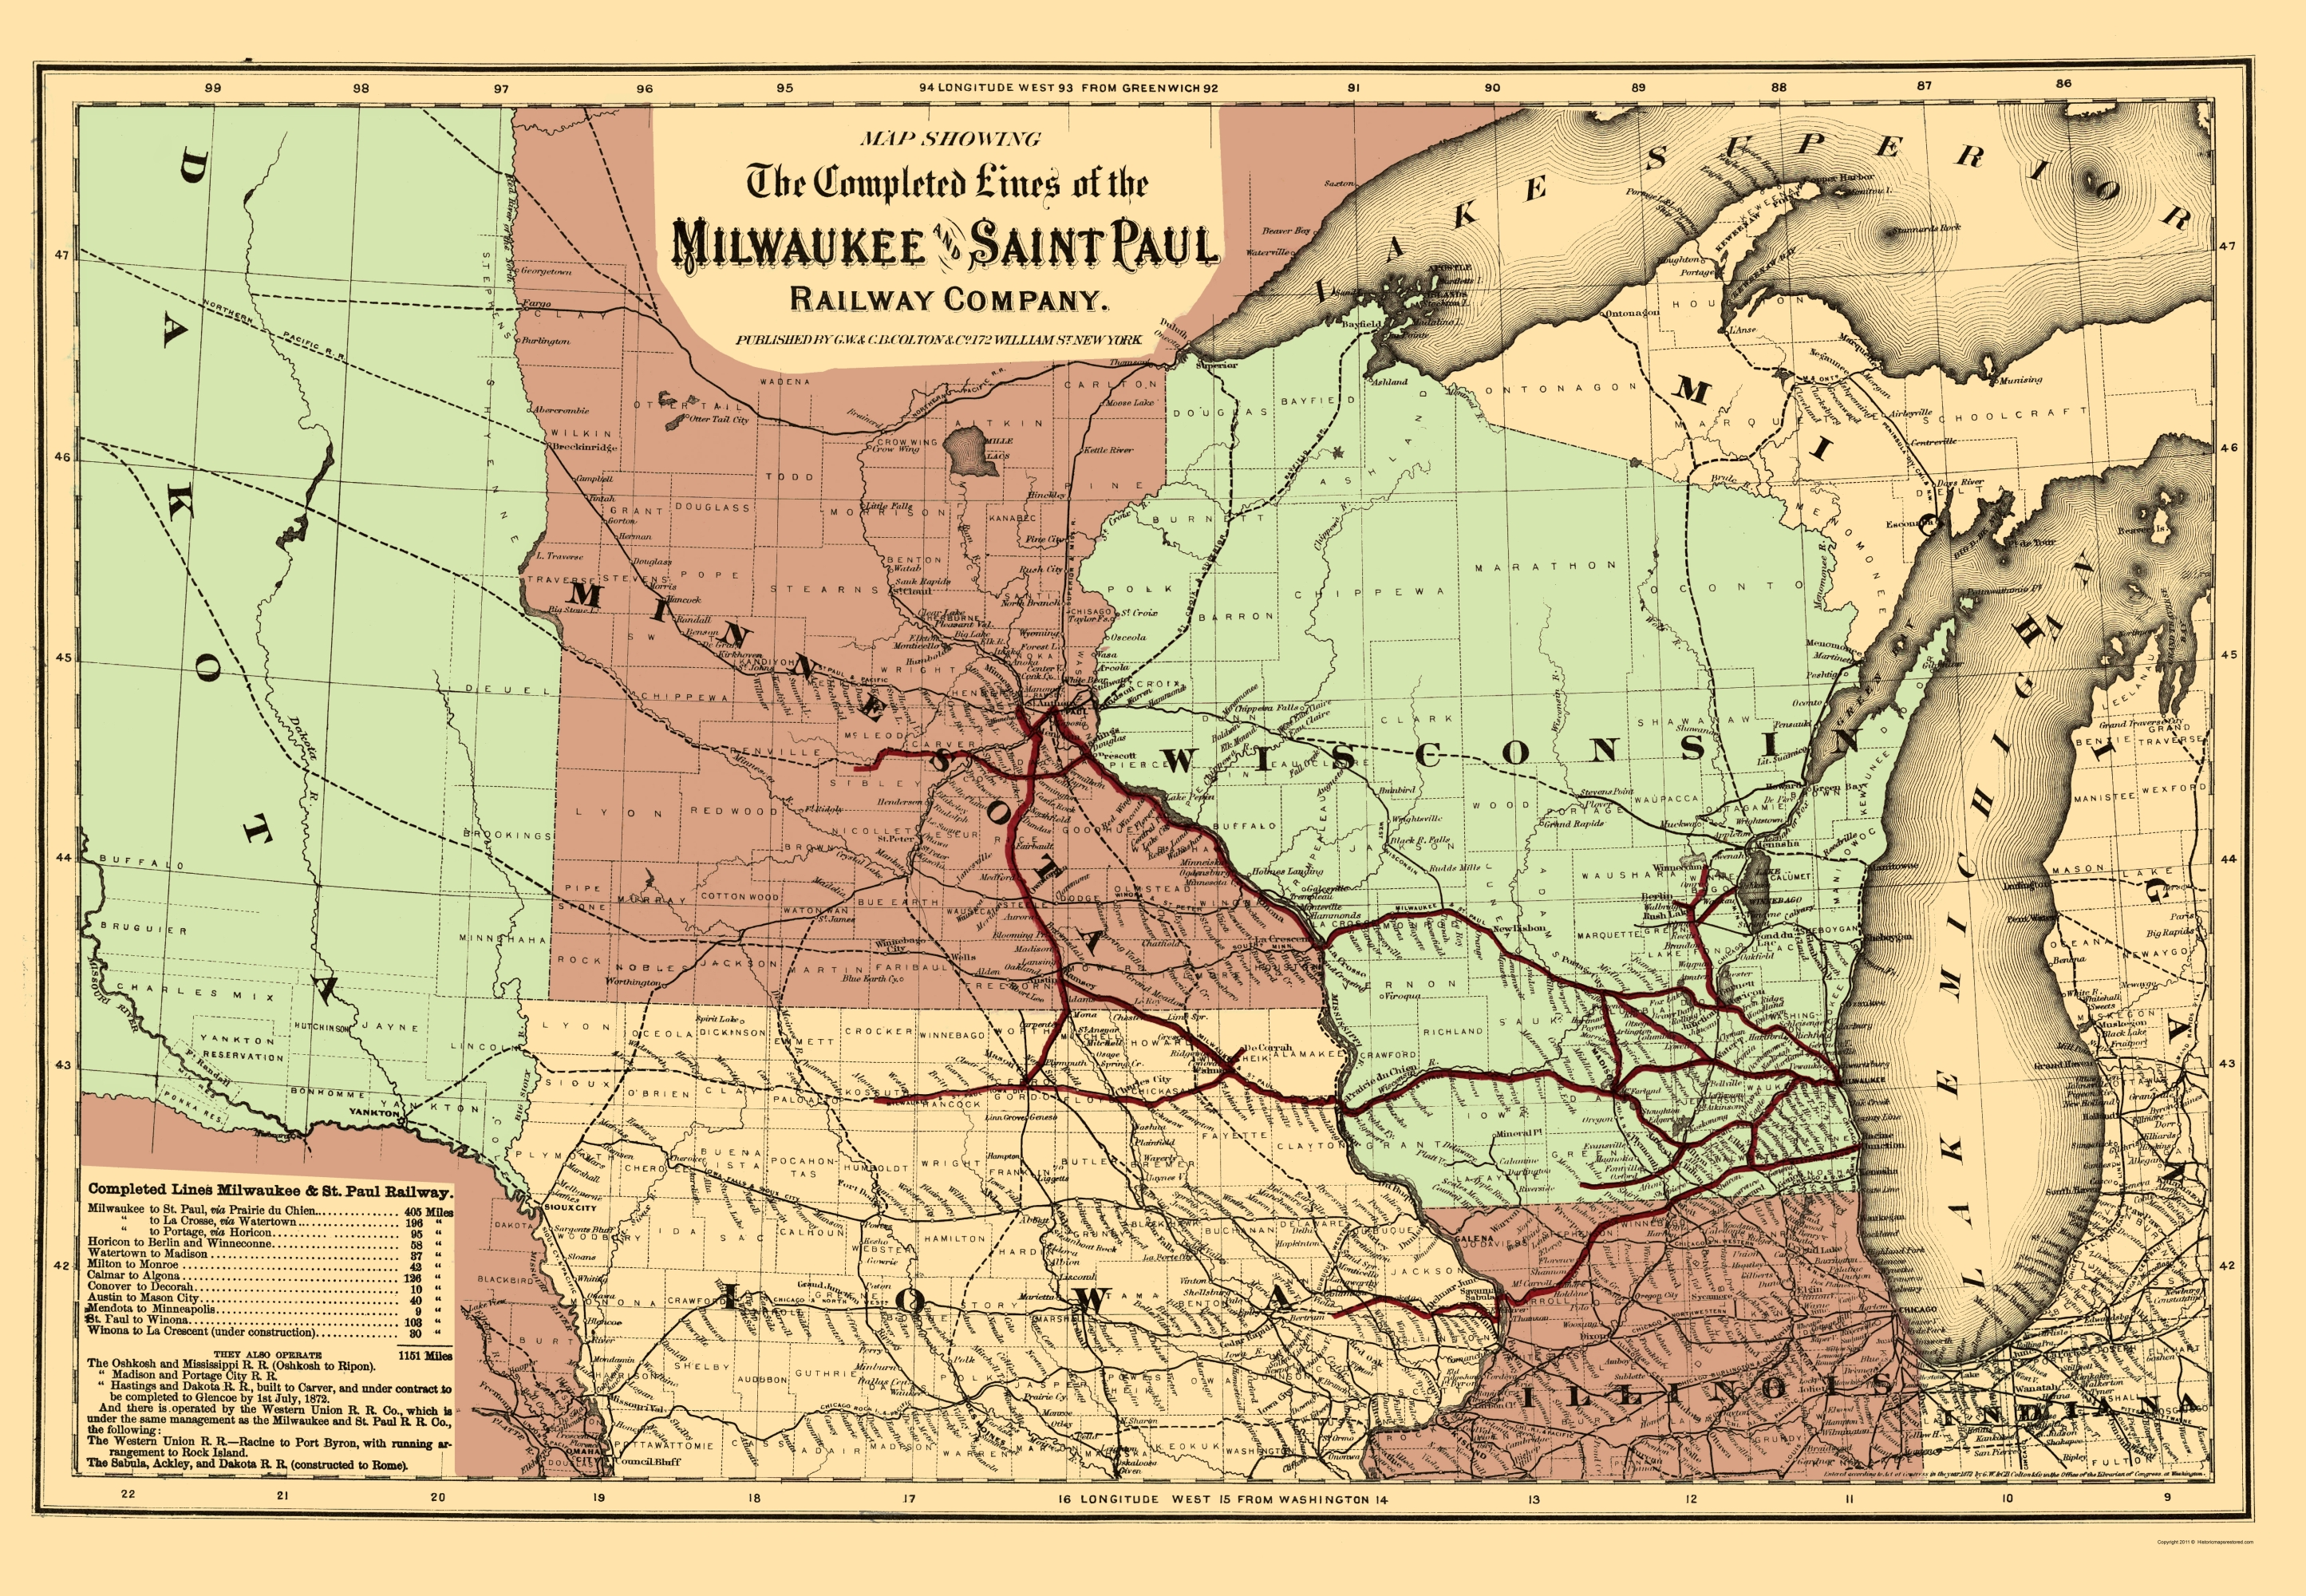 Old Railroad Map Milwaukee and Saint Paul Railway 1872